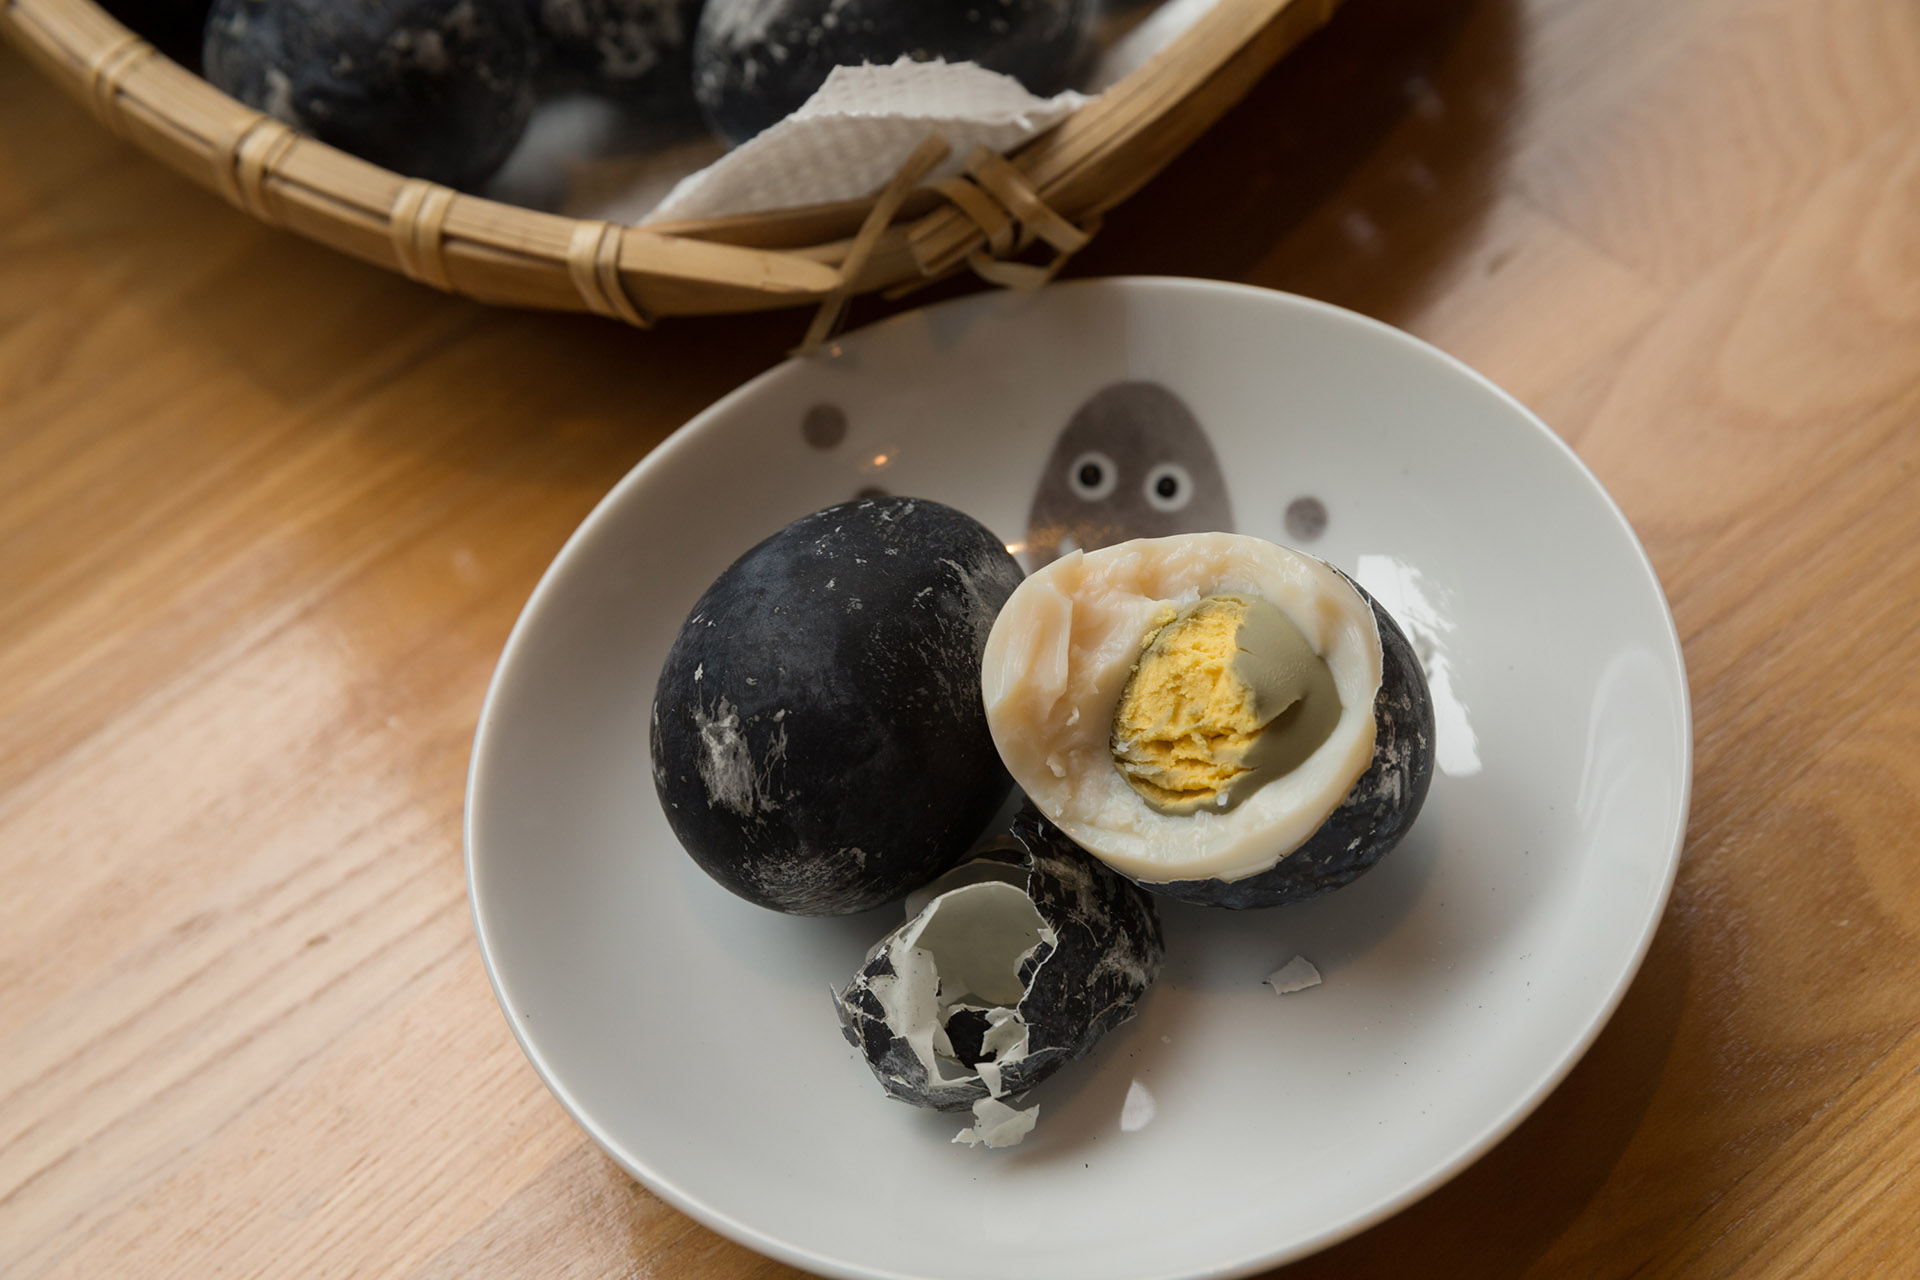 Eggs turned black from boiling in the Kuroyu Hot Spring      (source)